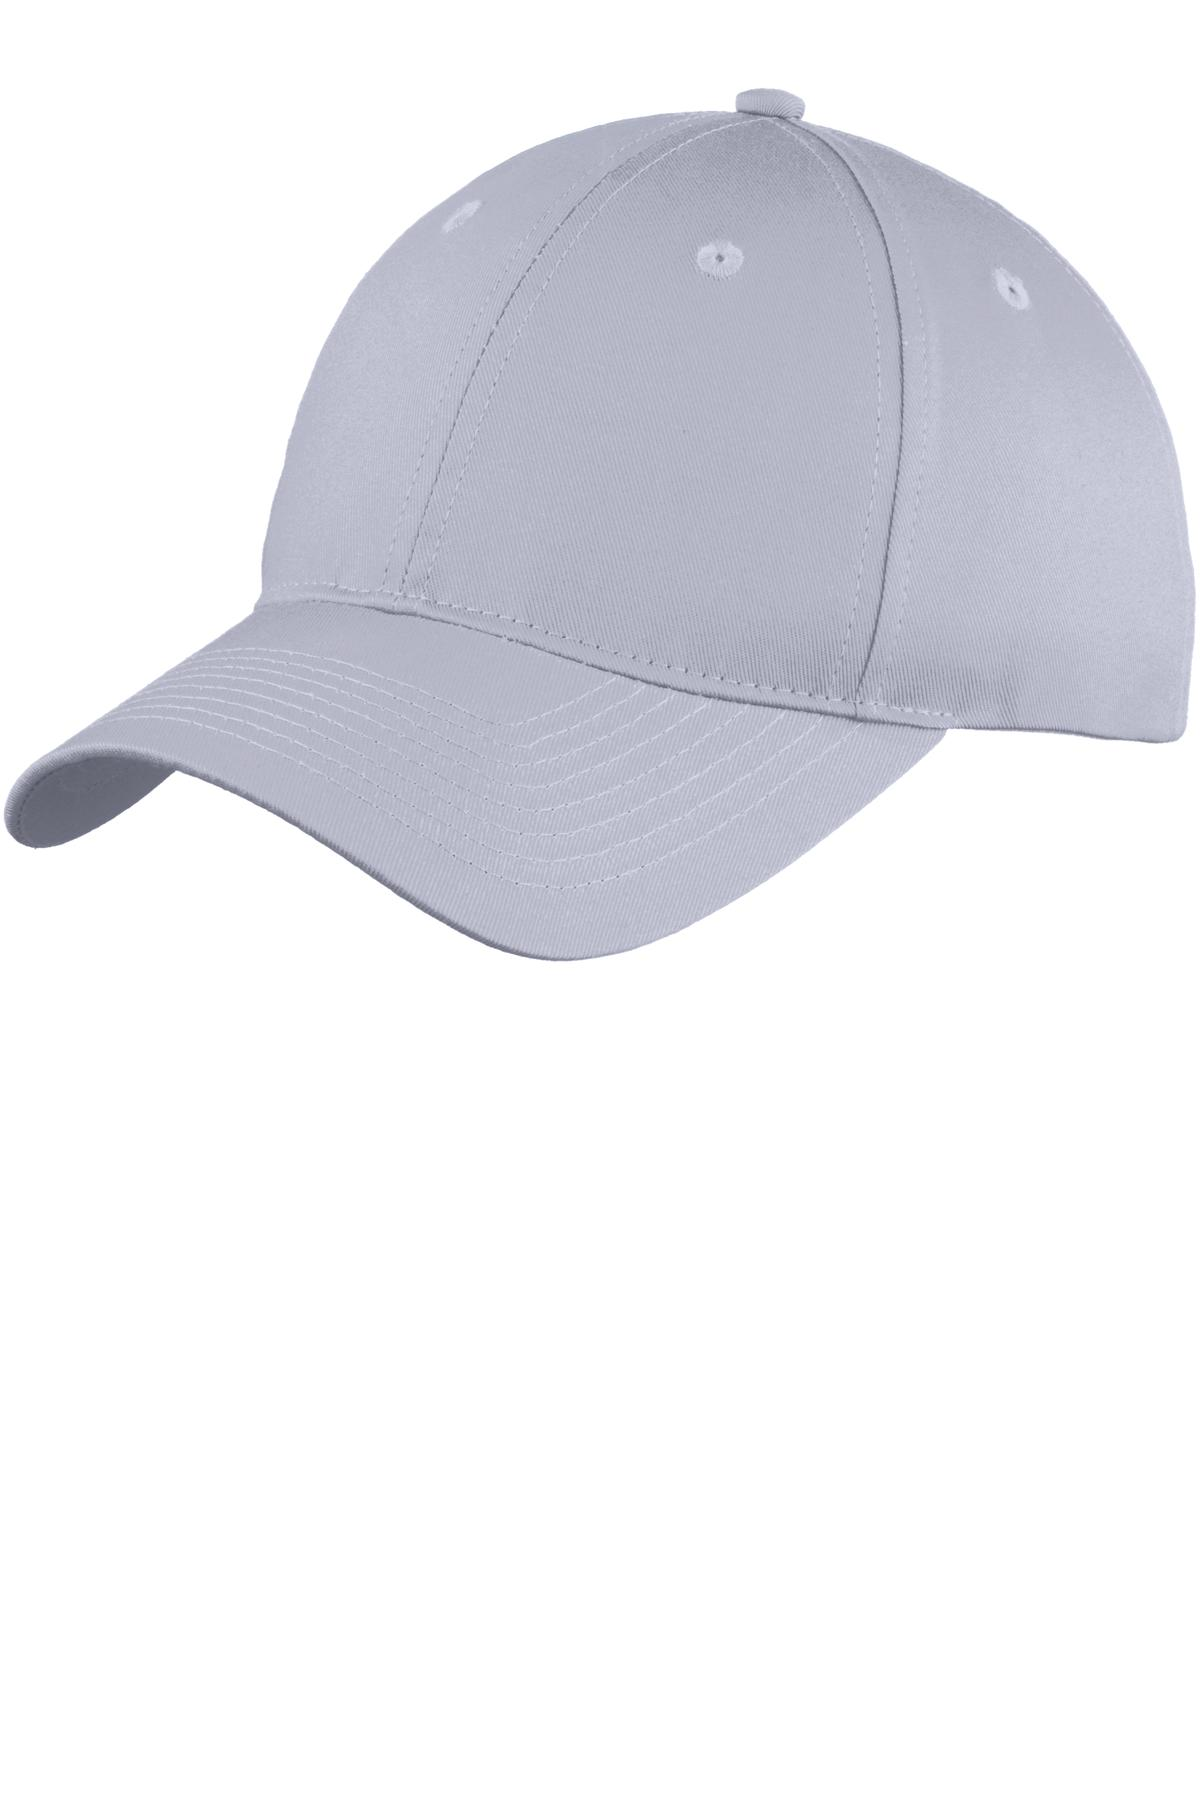 Port & Company ®  Six-Panel Unstructured Twill Cap. C914 - Silver